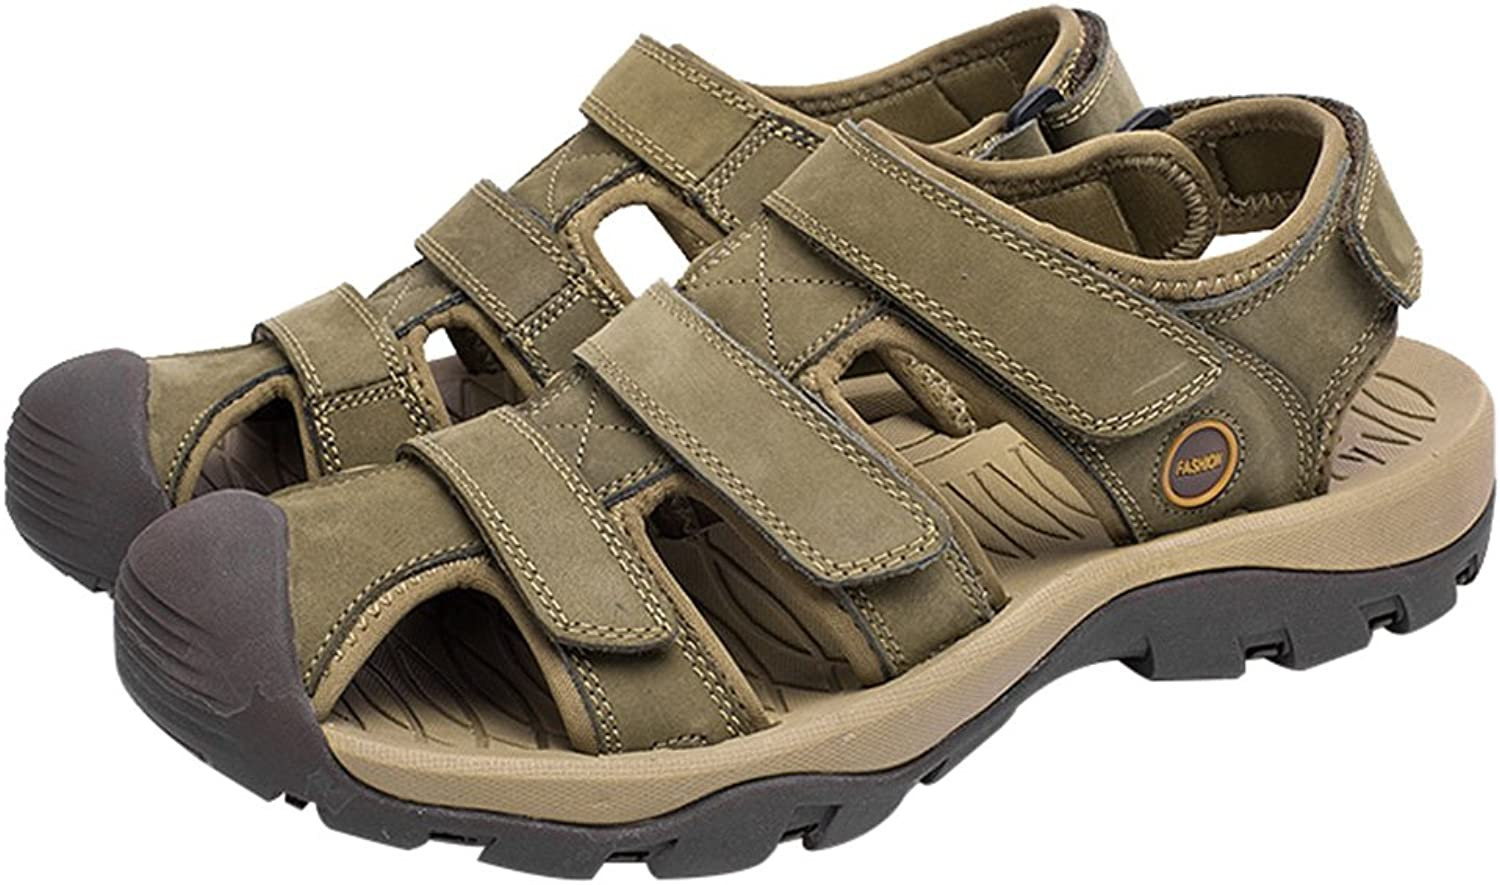 Hevego Zandalias Closed Toe Fisherman Leather Beach Hiking Sandals for Women